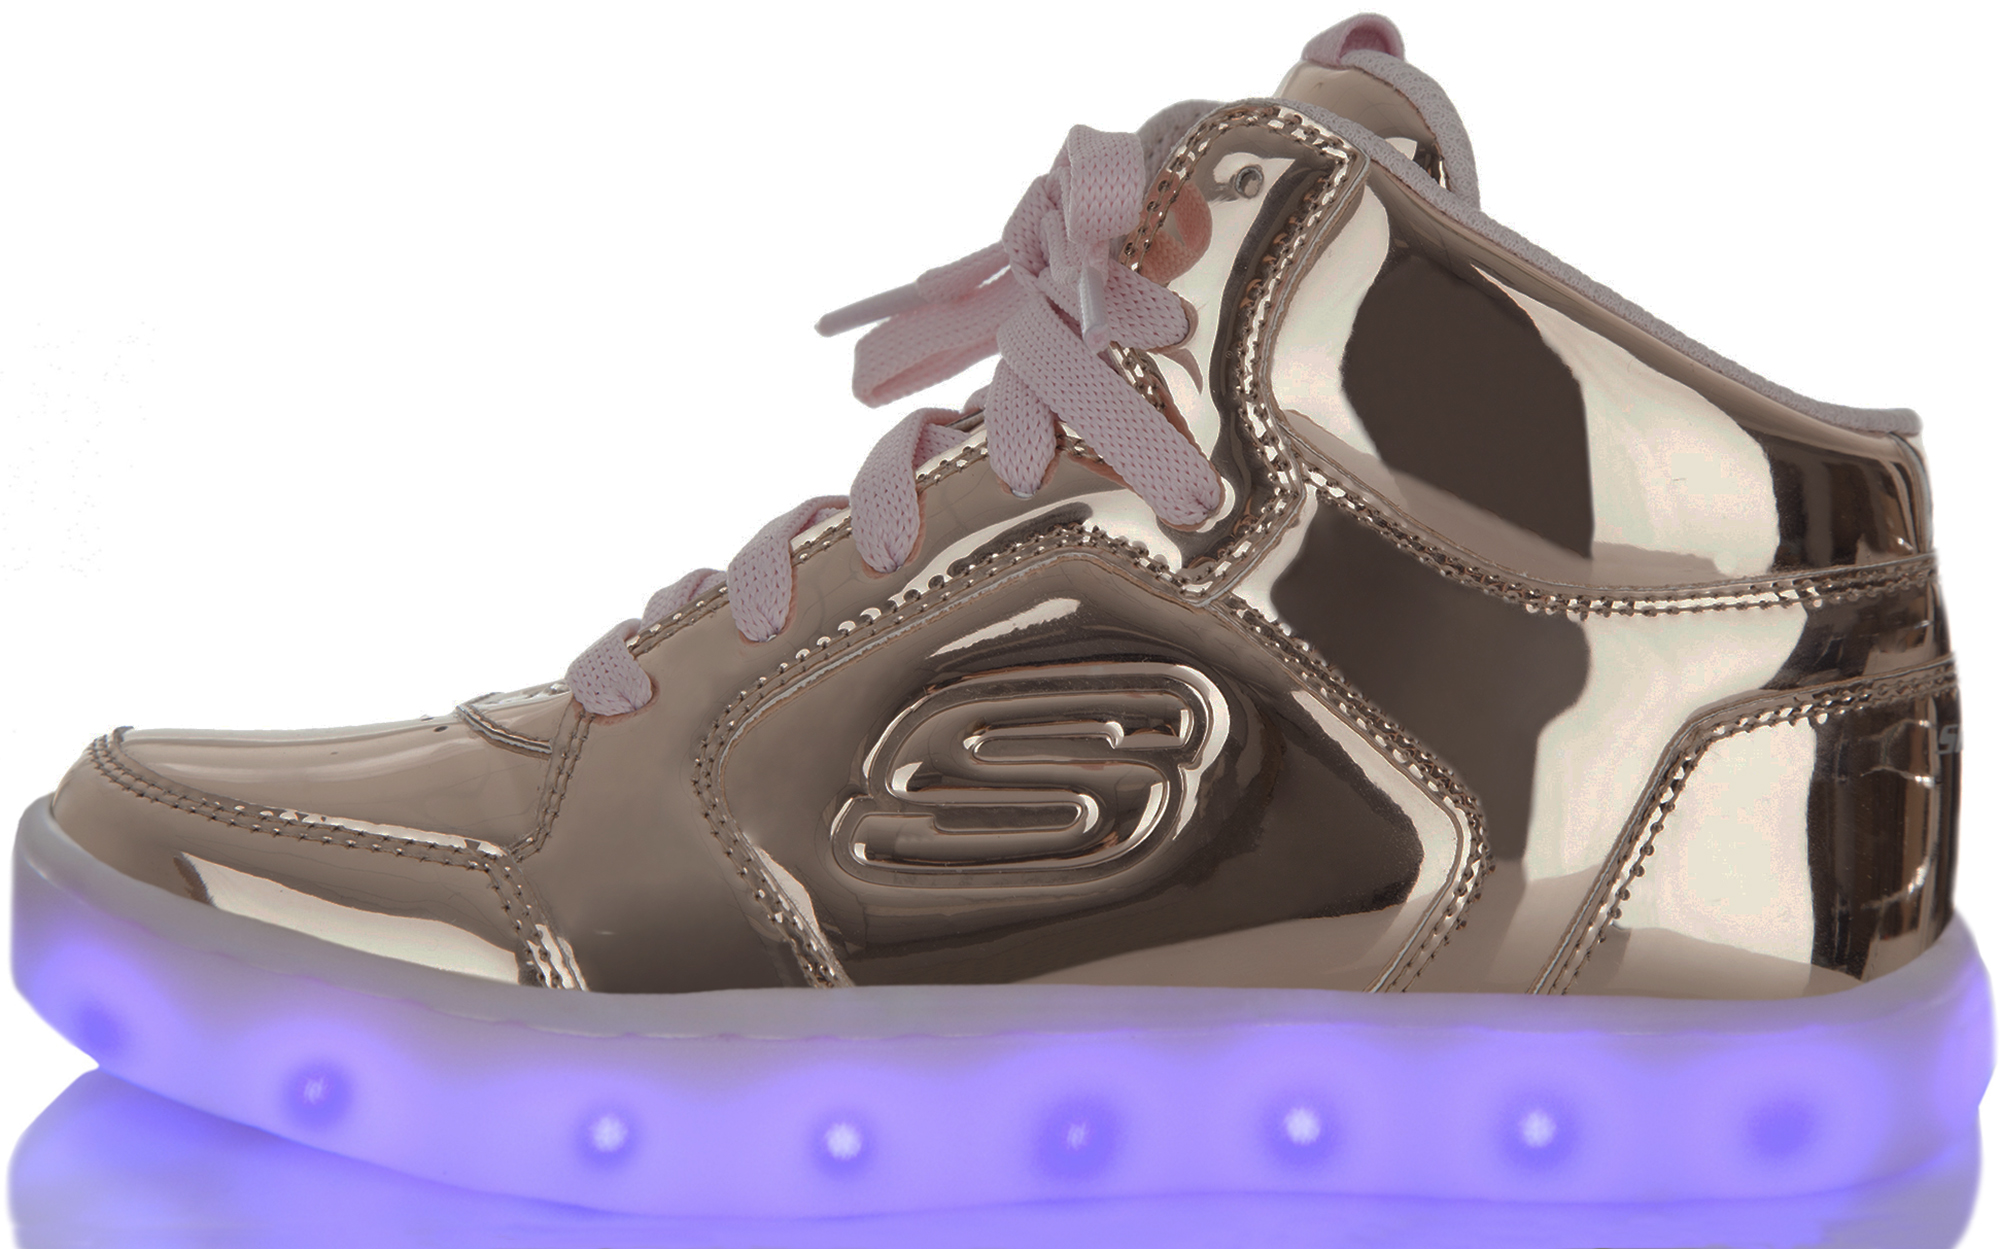 Skechers Кеды для девочек Skechers Energy Lights-Dance-N-Dazzle skechers energy light